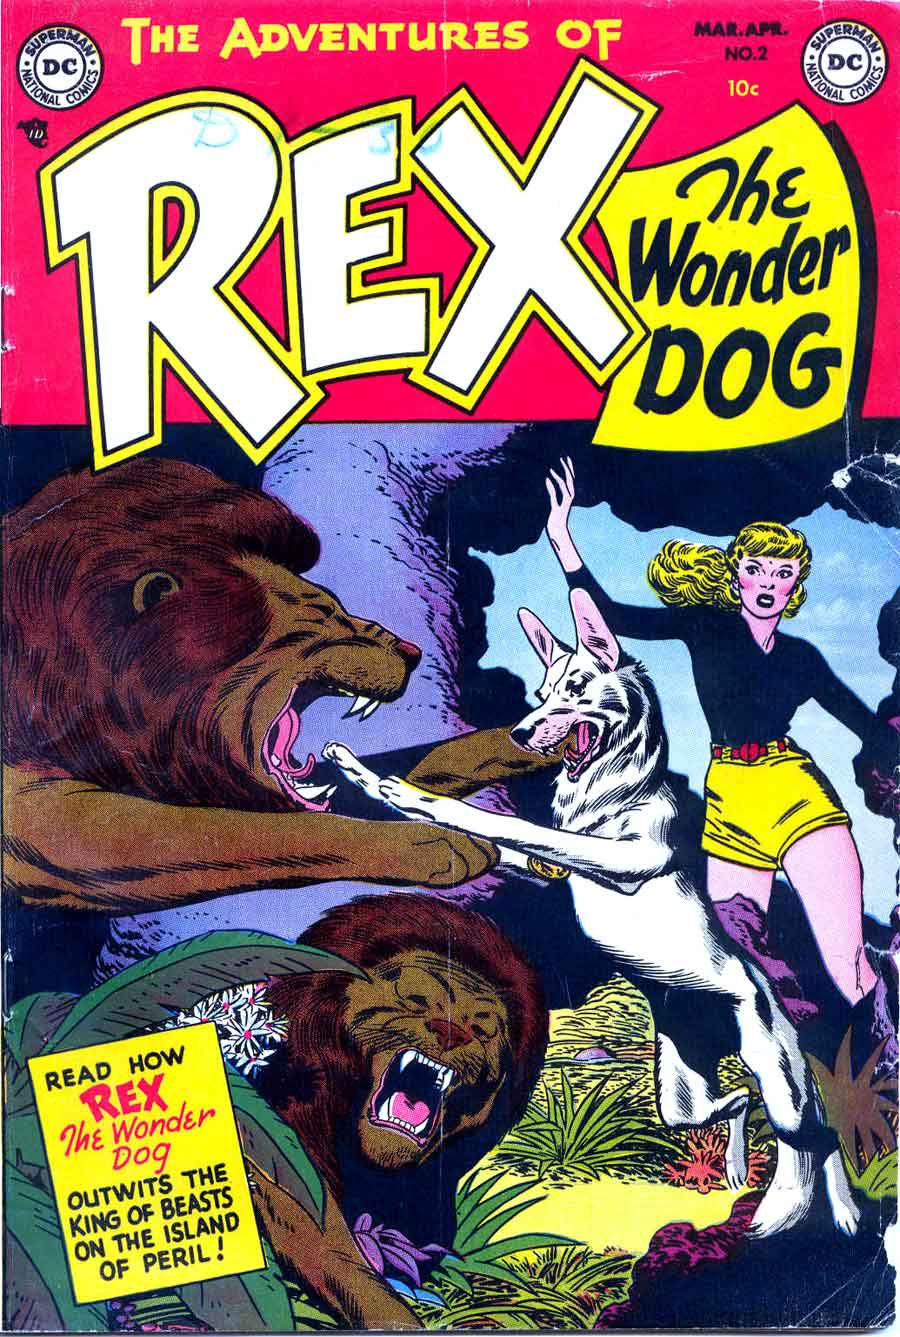 Adventures of Rex the Wonder Dog v1 #2 dc 1950s golden age comic book cover art by Alex Toth